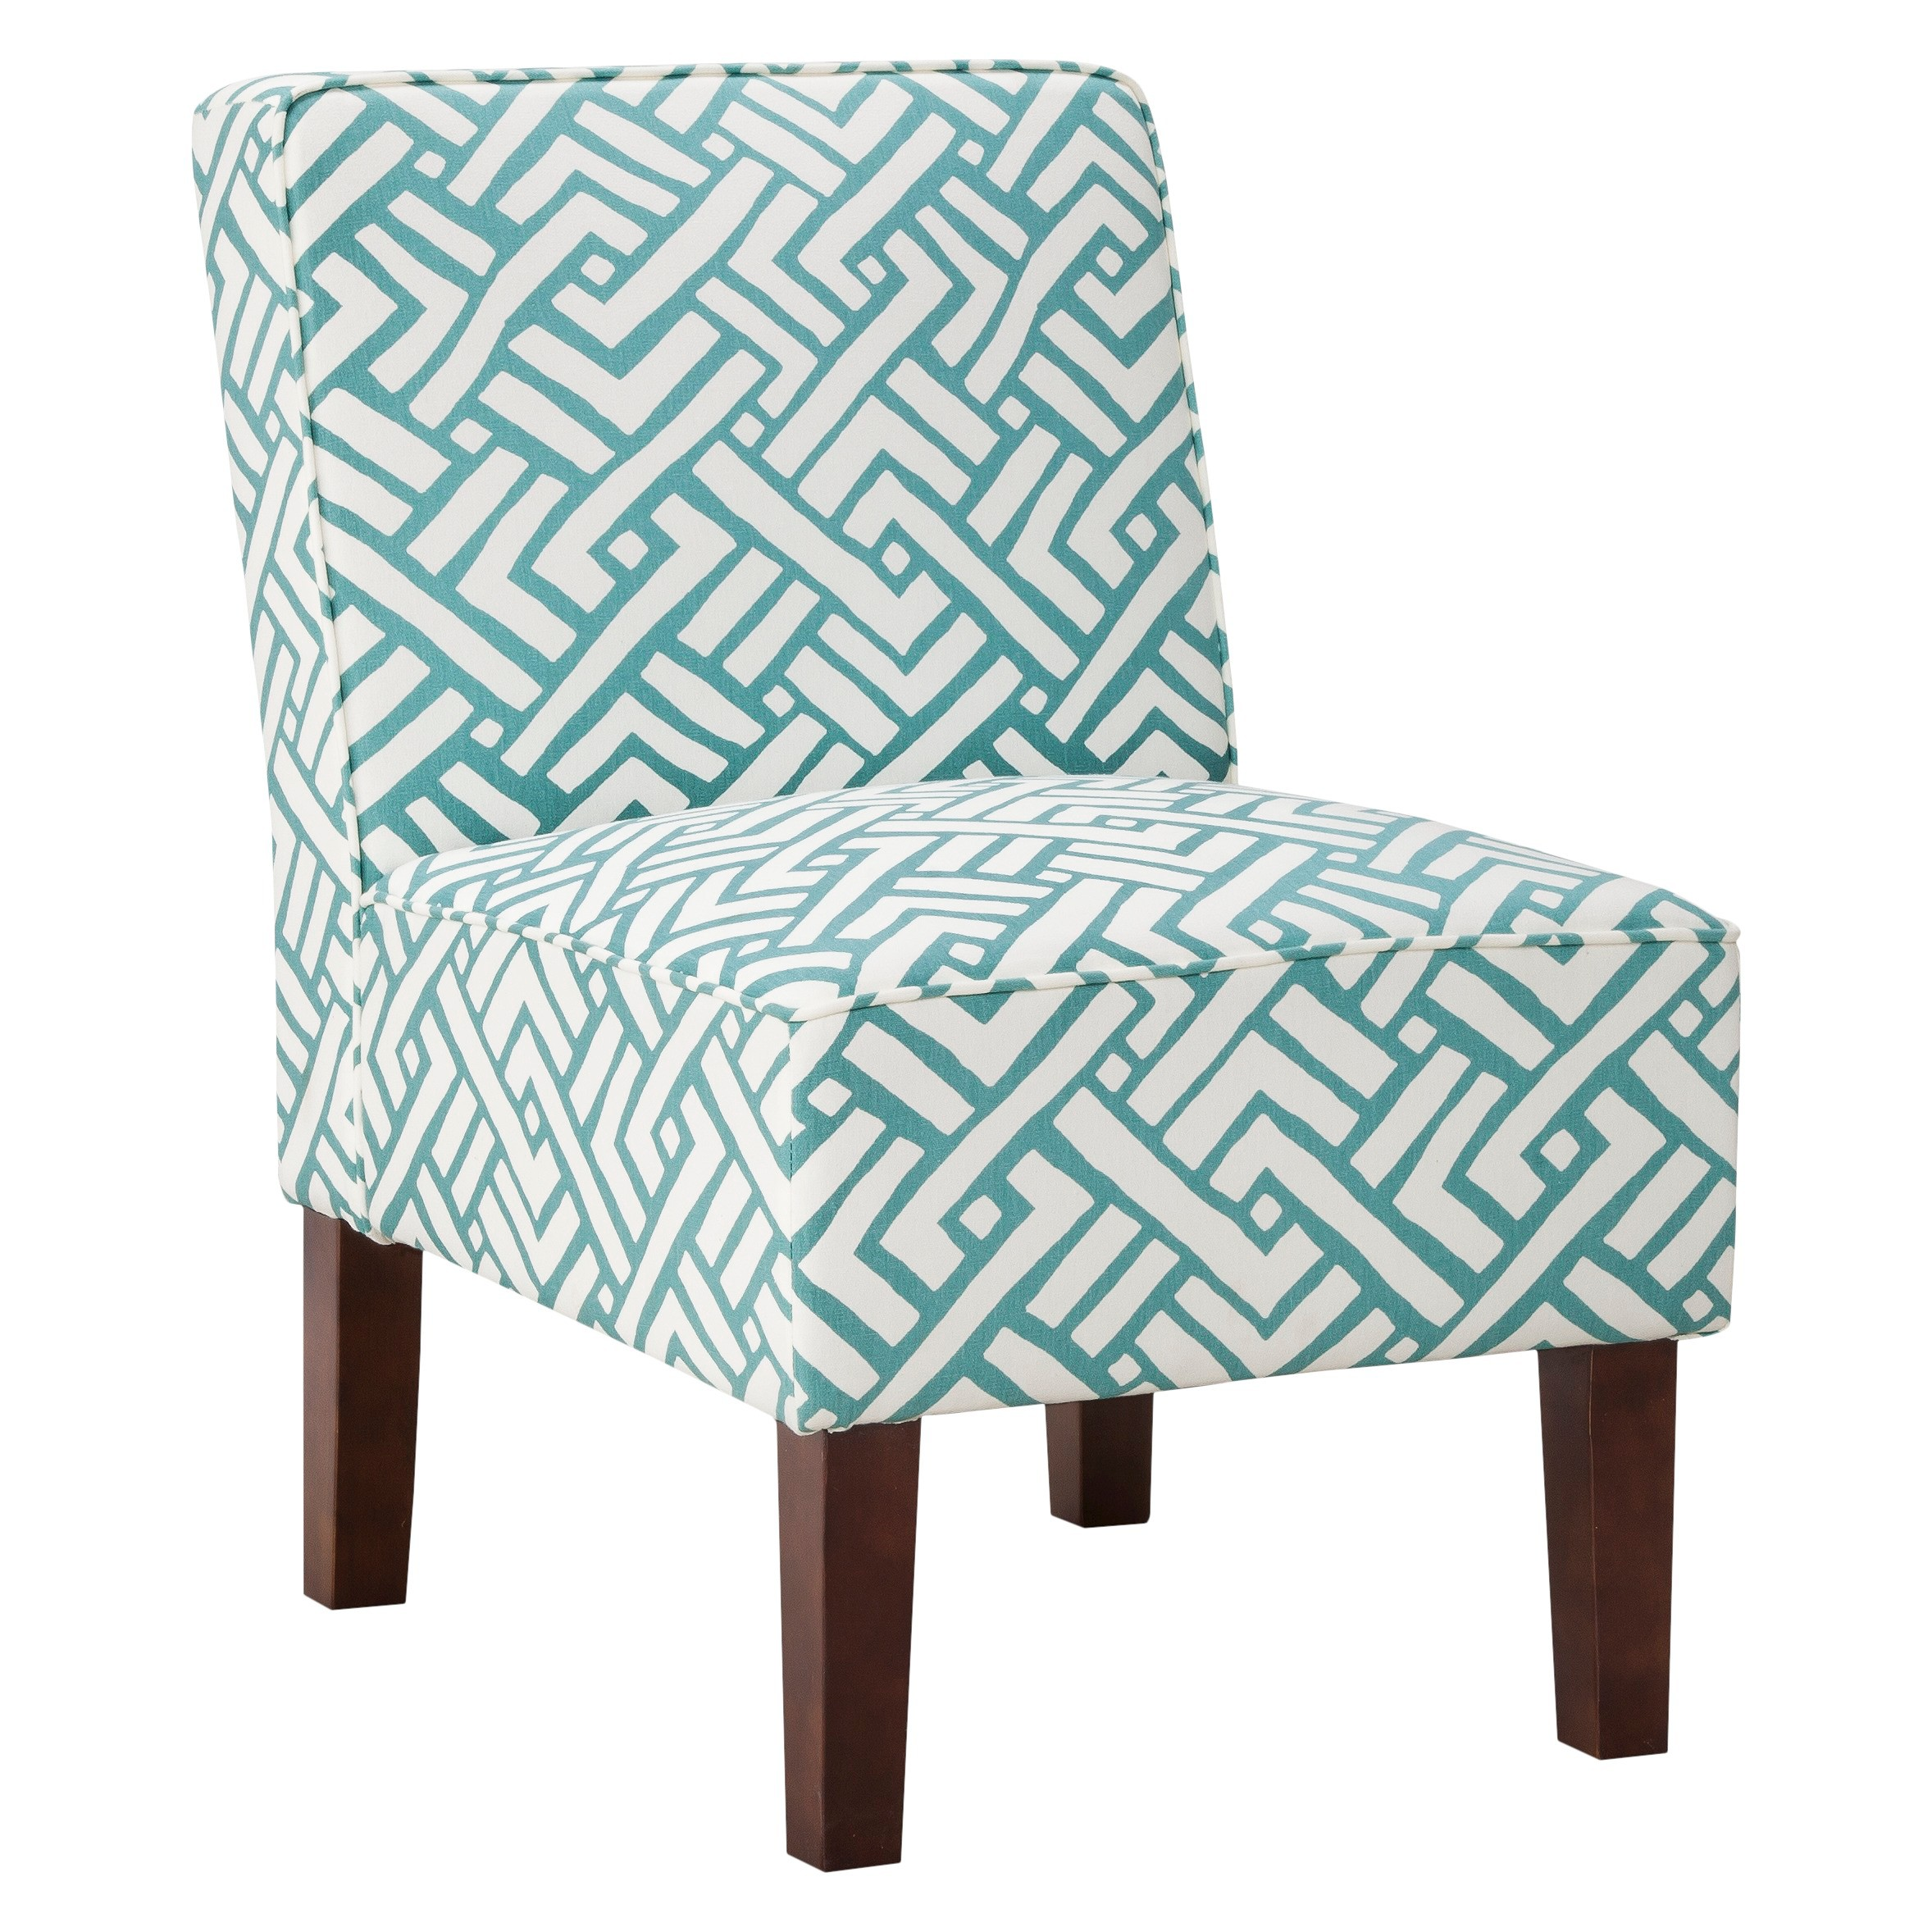 Turquoise Geo Slipper Chair  Everything Turquoise